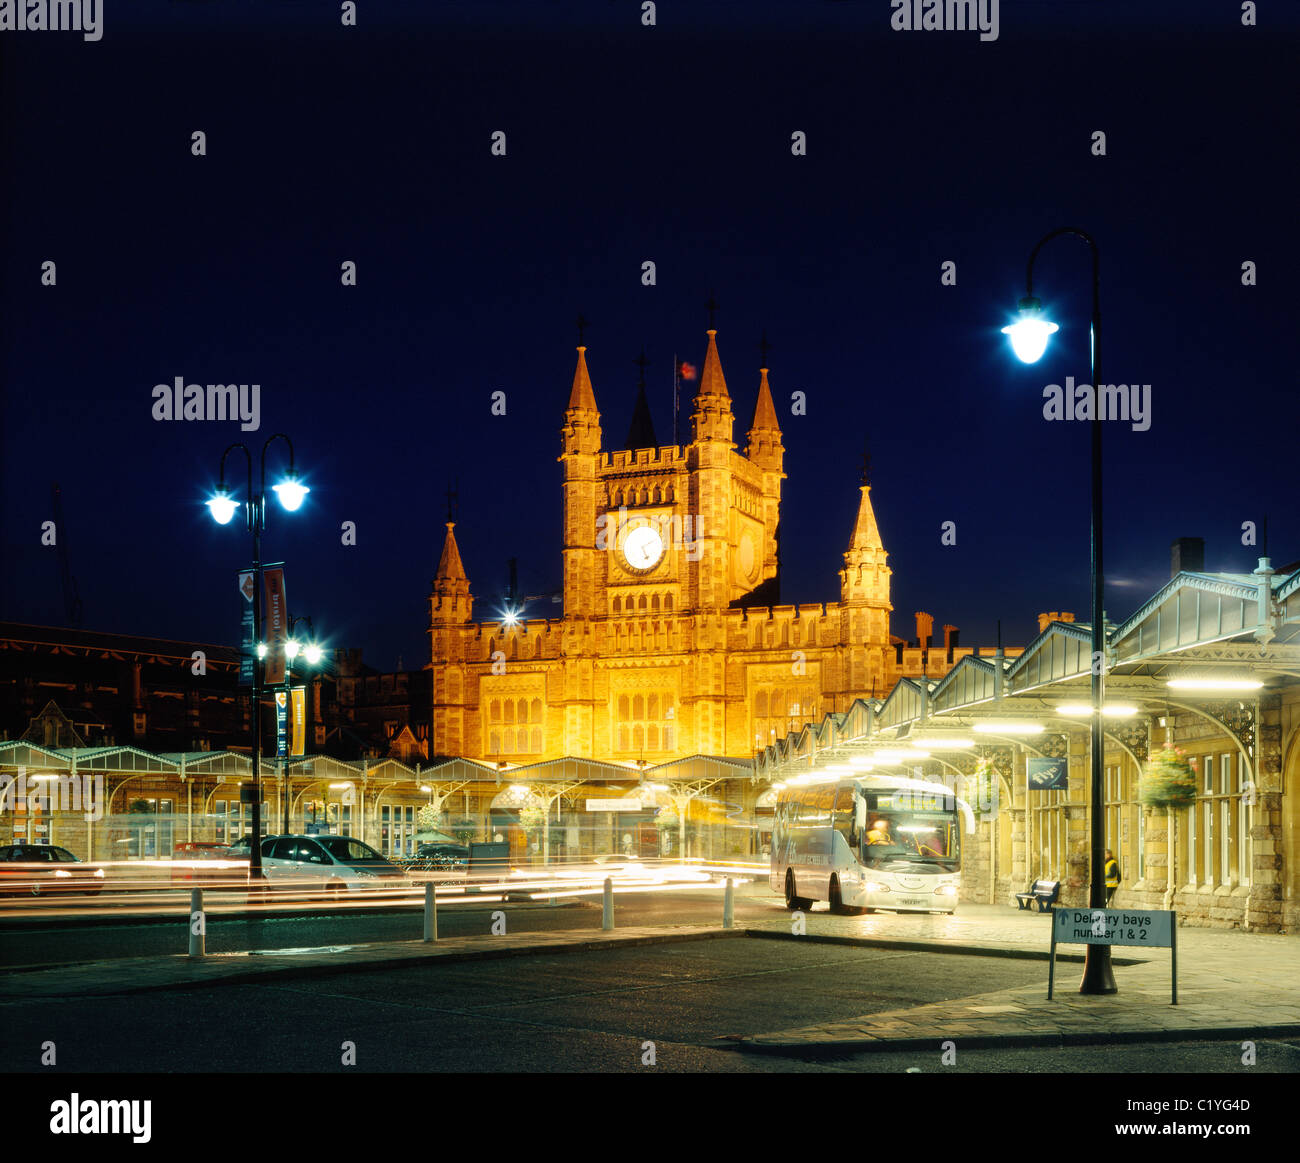 Bristol Temple Meads Railway station at night. Stock Photo